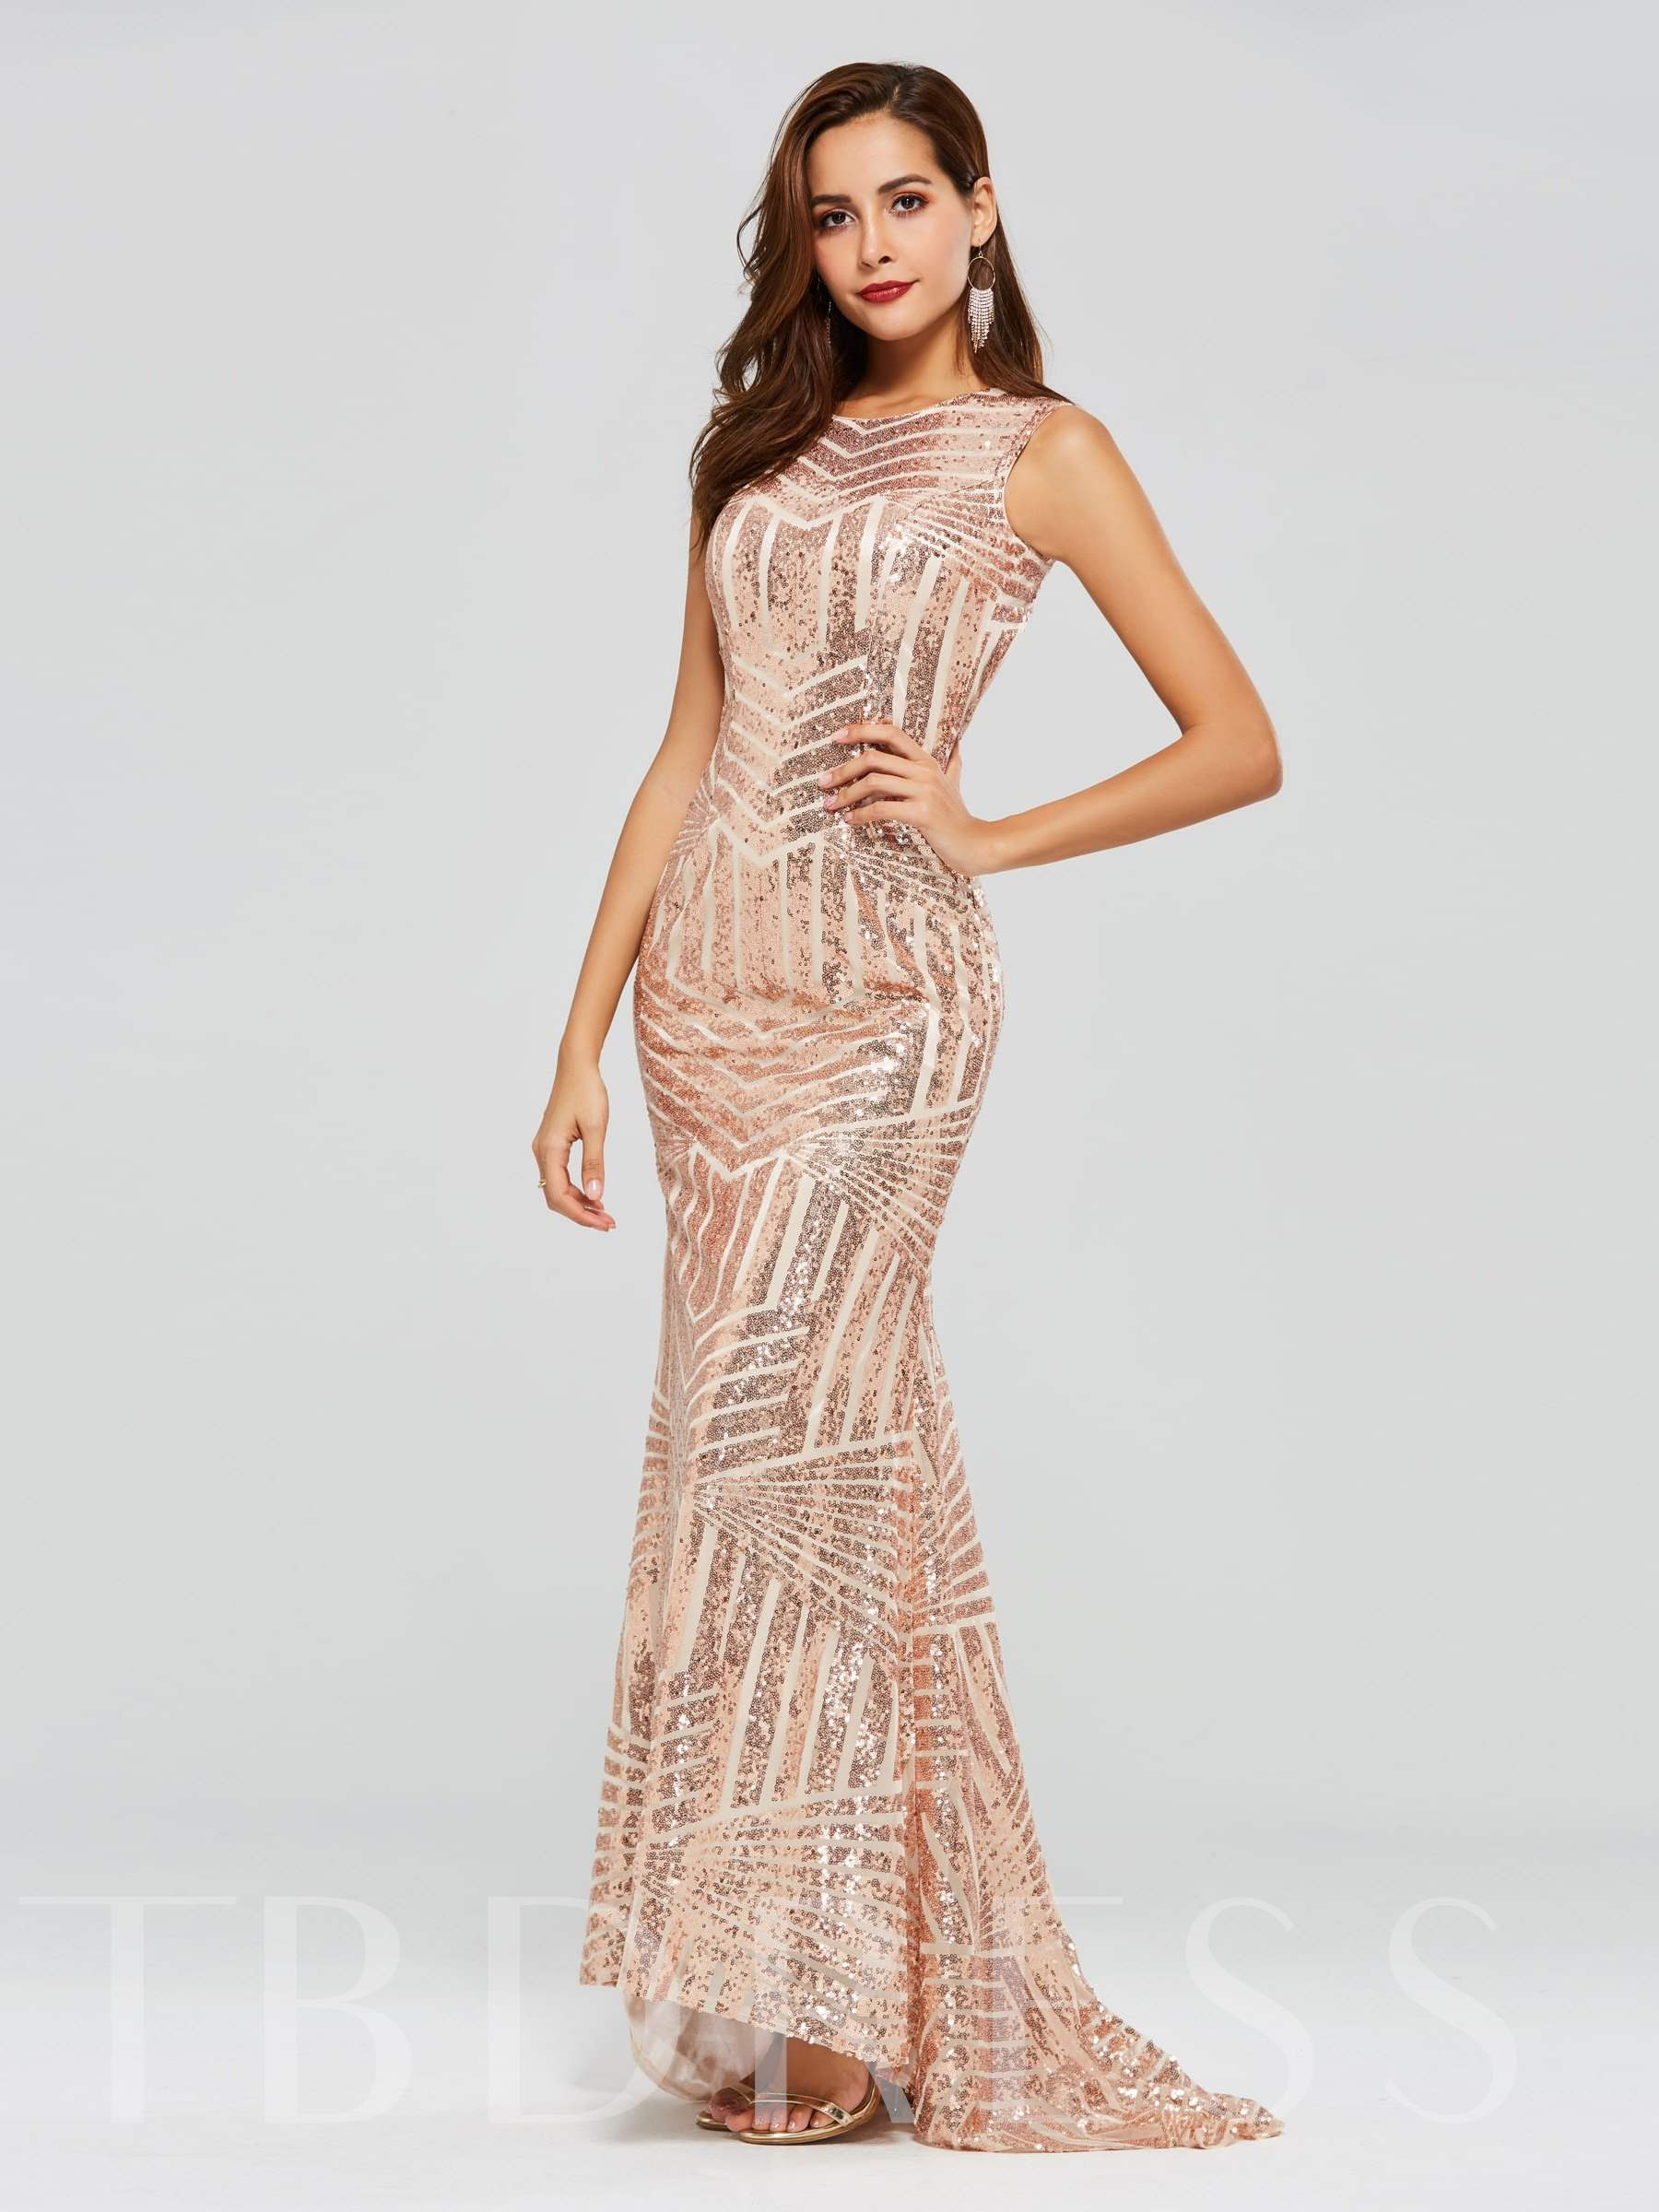 Buy Mermaid Sequins Backless Scoop Evening Dress, Spring,Summer,Fall,Winter, 13318467 for $128.98 in TBDress store